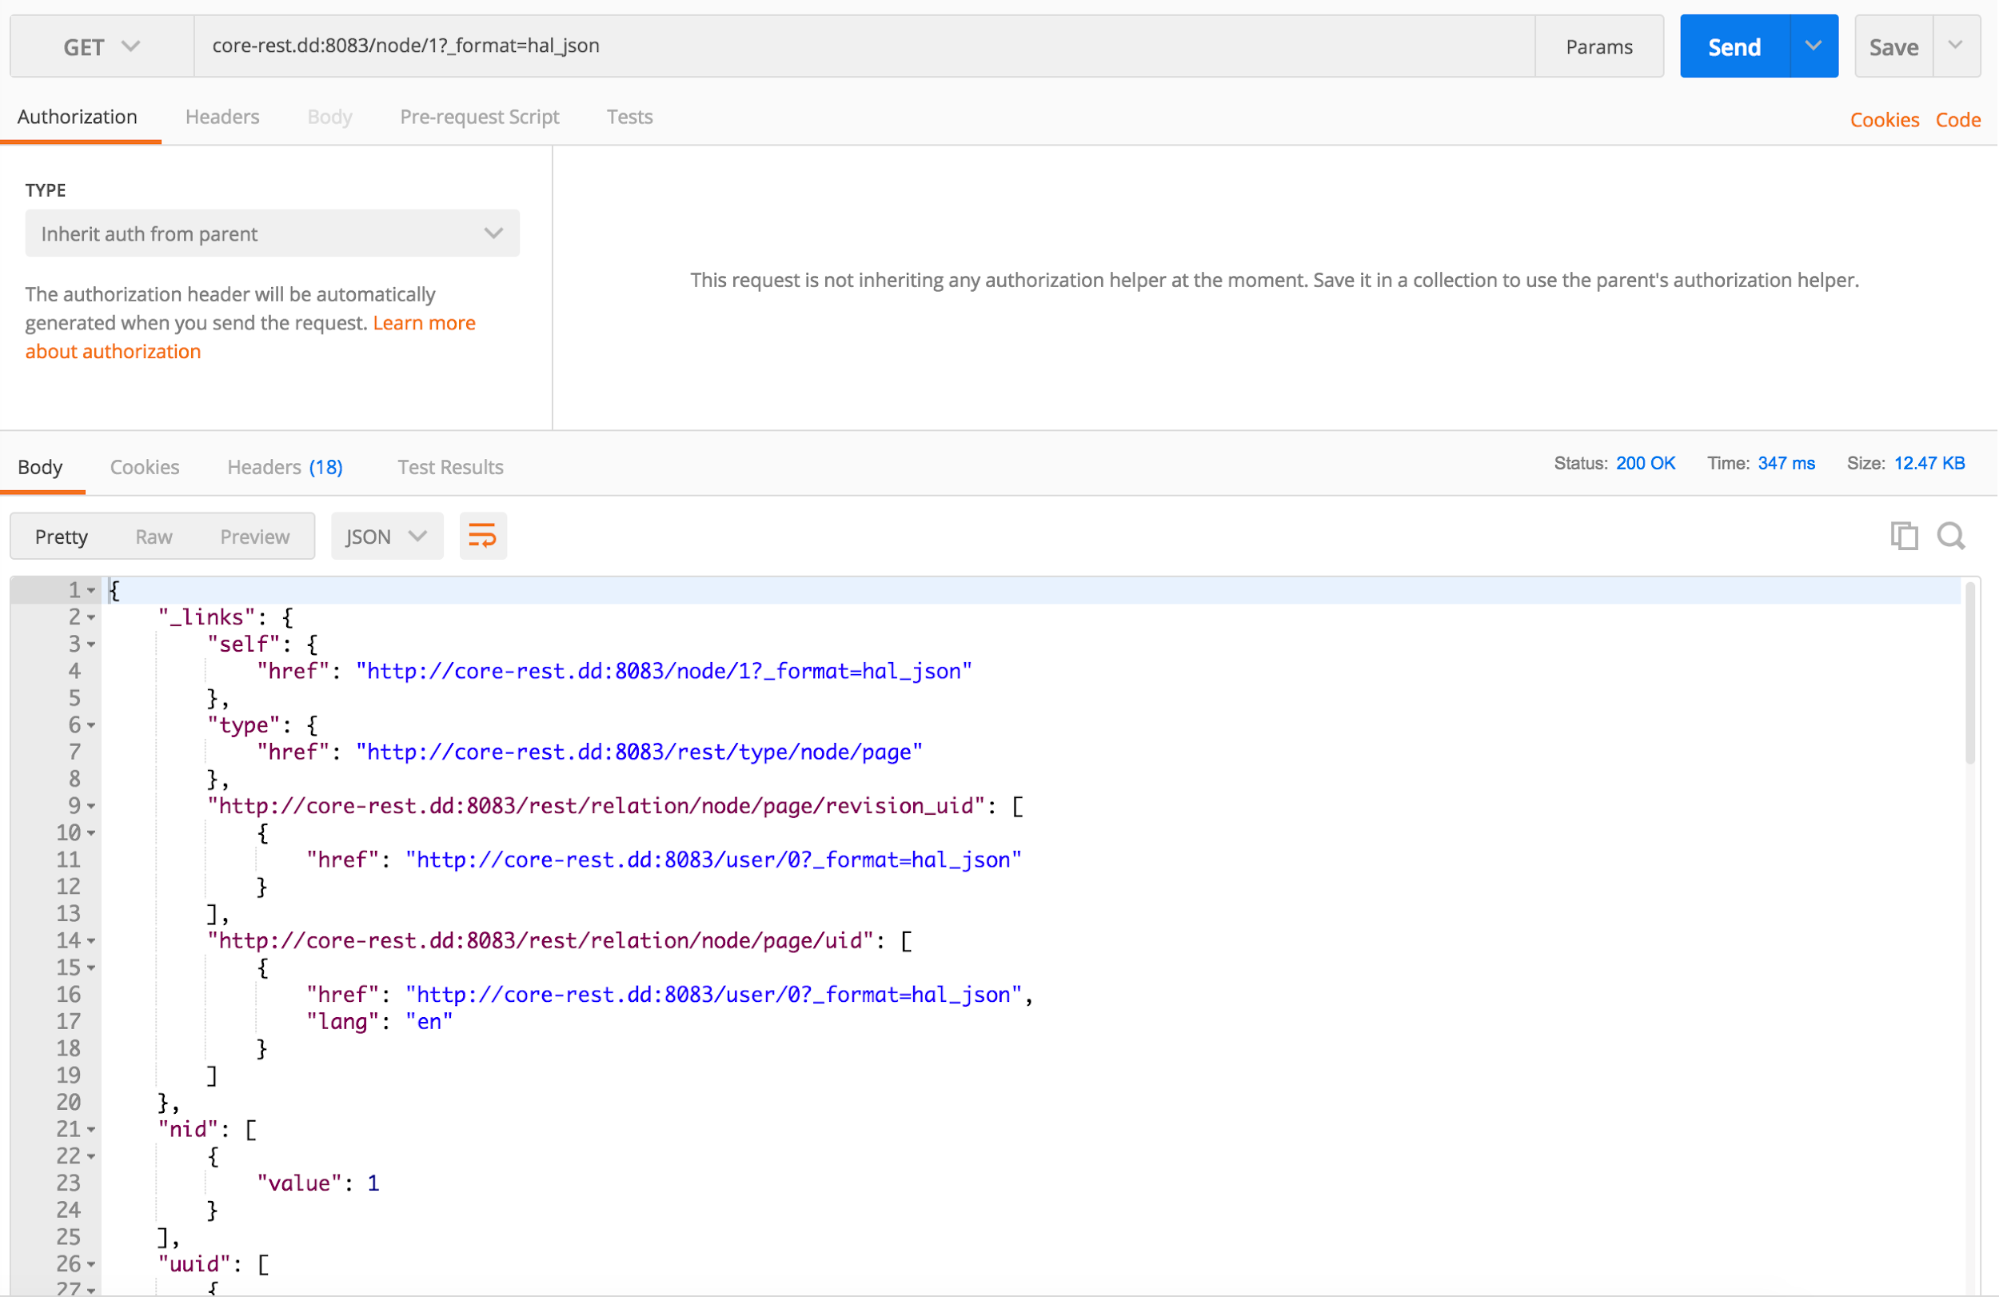 Issuing a GET request with Postman